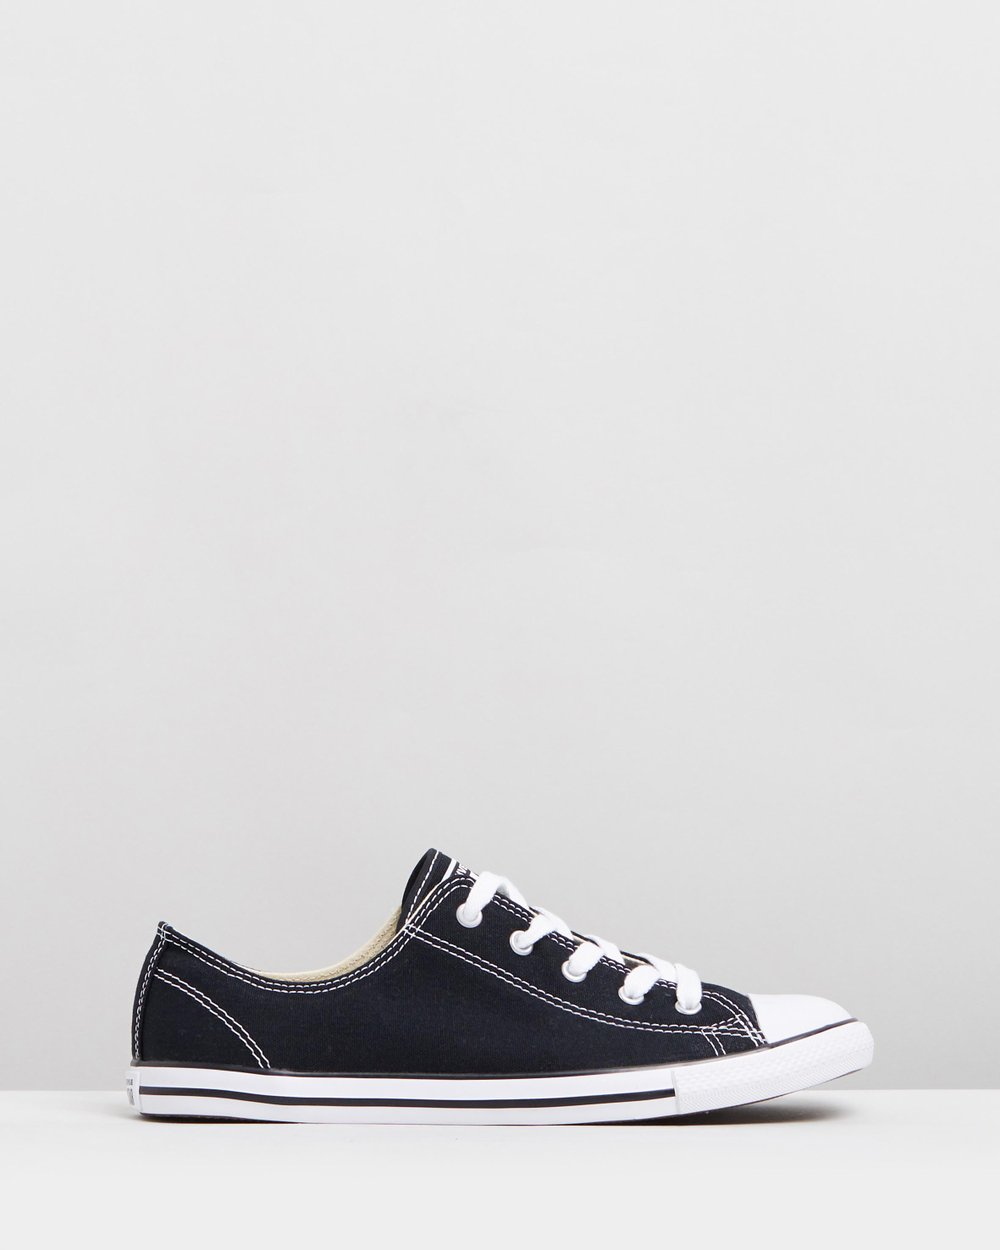 42cac8a64689 Chuck Taylor All Star Dainty Ox - Women s by Converse Online